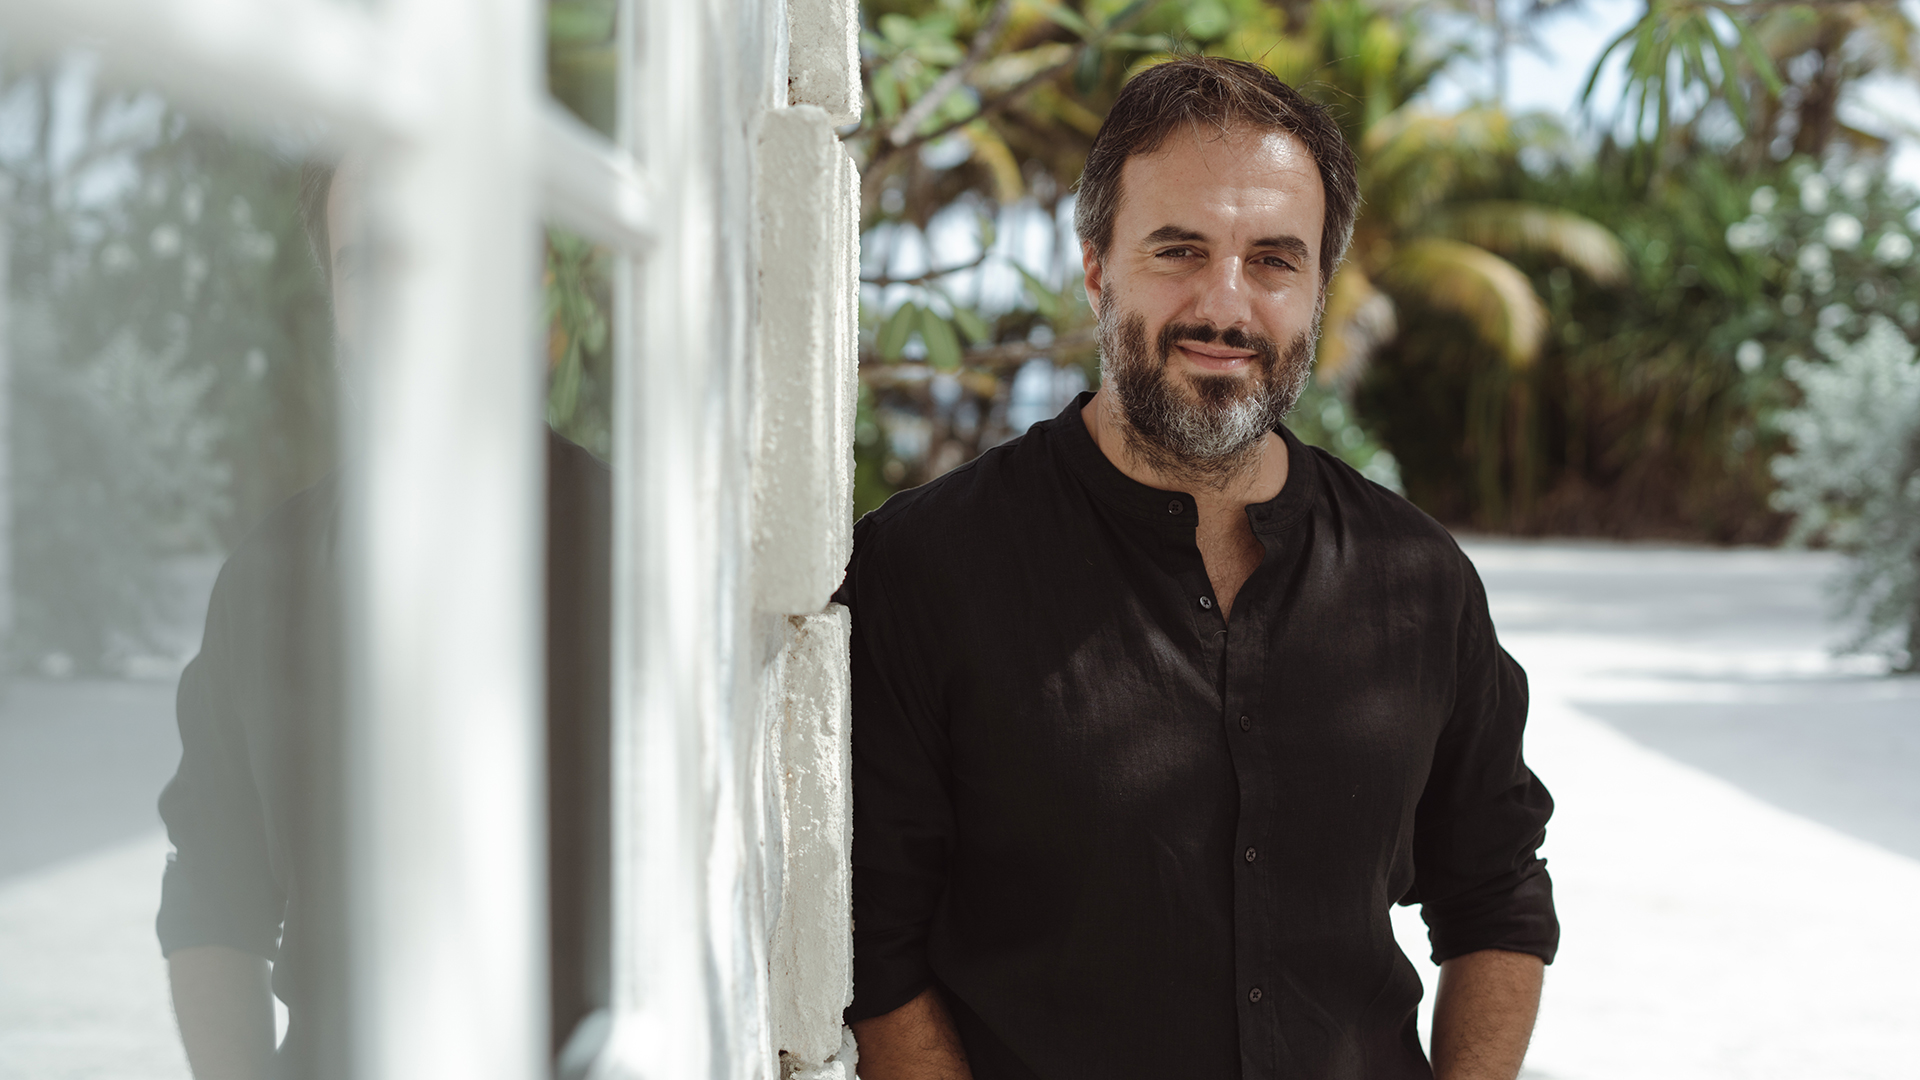 Farfetch CEO Jose Neves, photographed at his home, enjoying his moment in the sun.